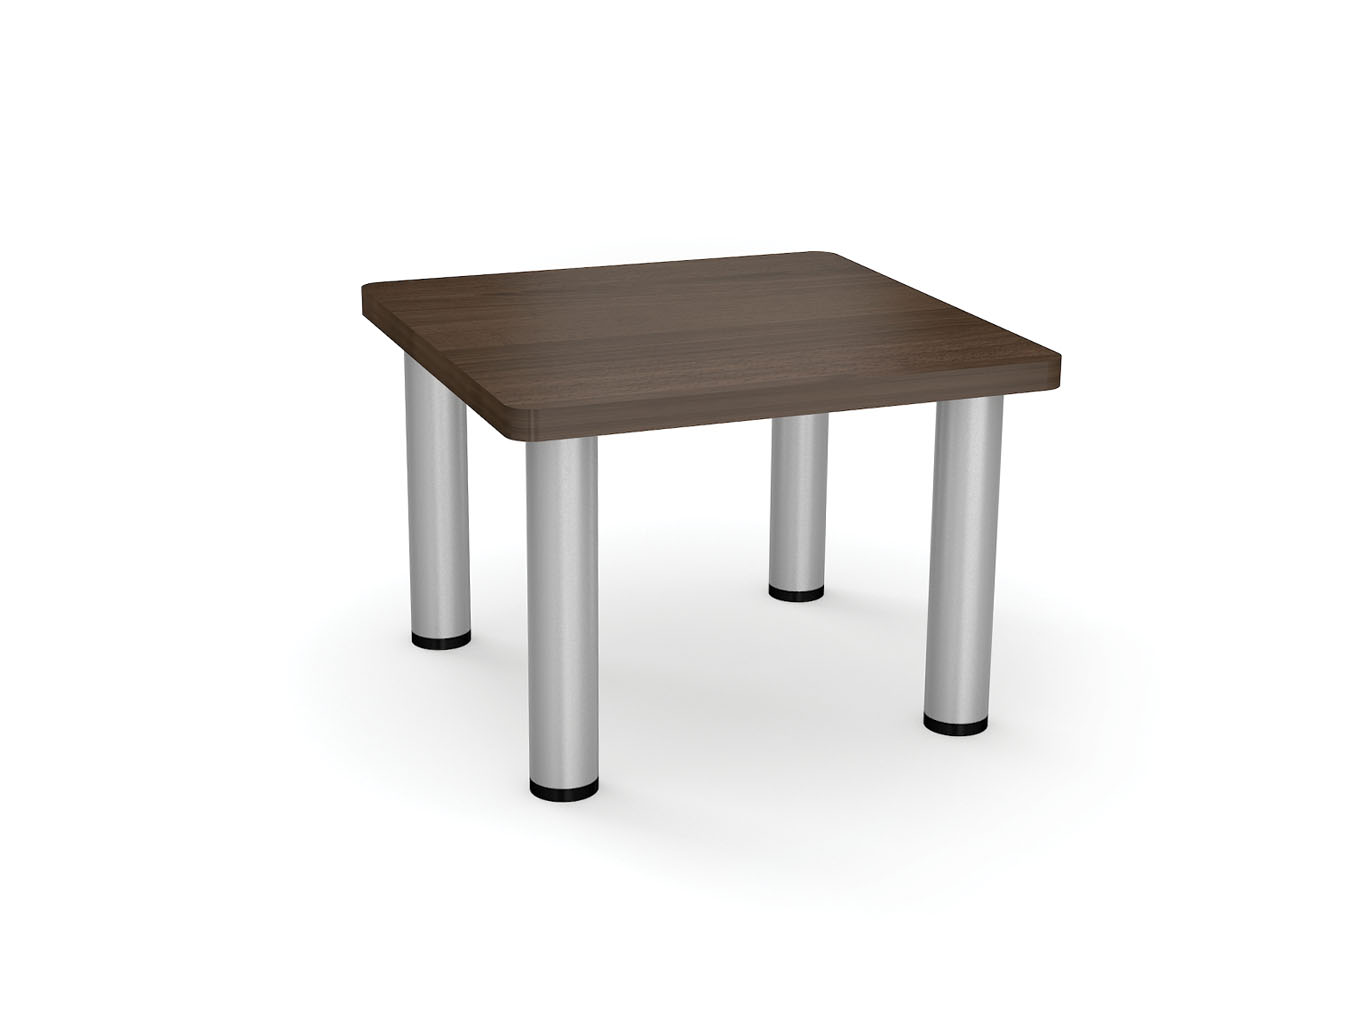 Coffee Tables Available With Pole Legs Or Panel Legs Oxford Office Furniture